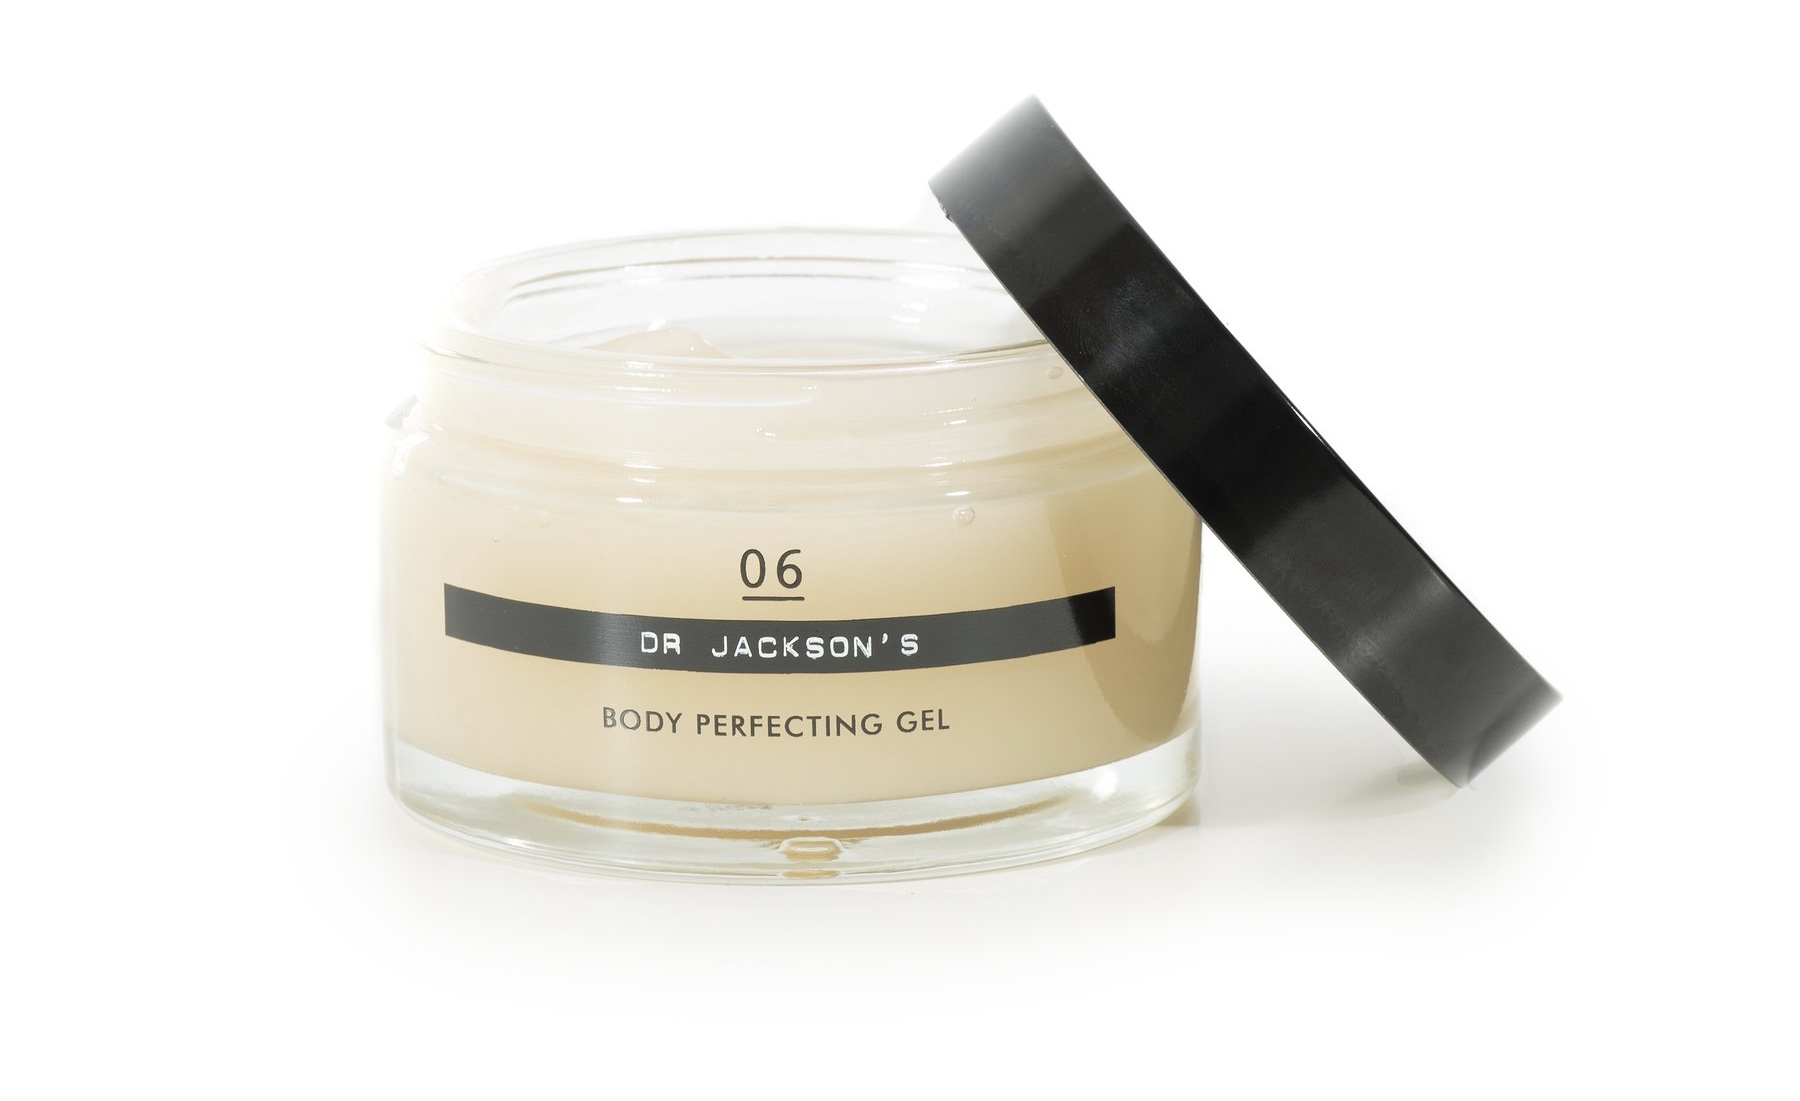 Dr Jacksons Body Perfecting Gel